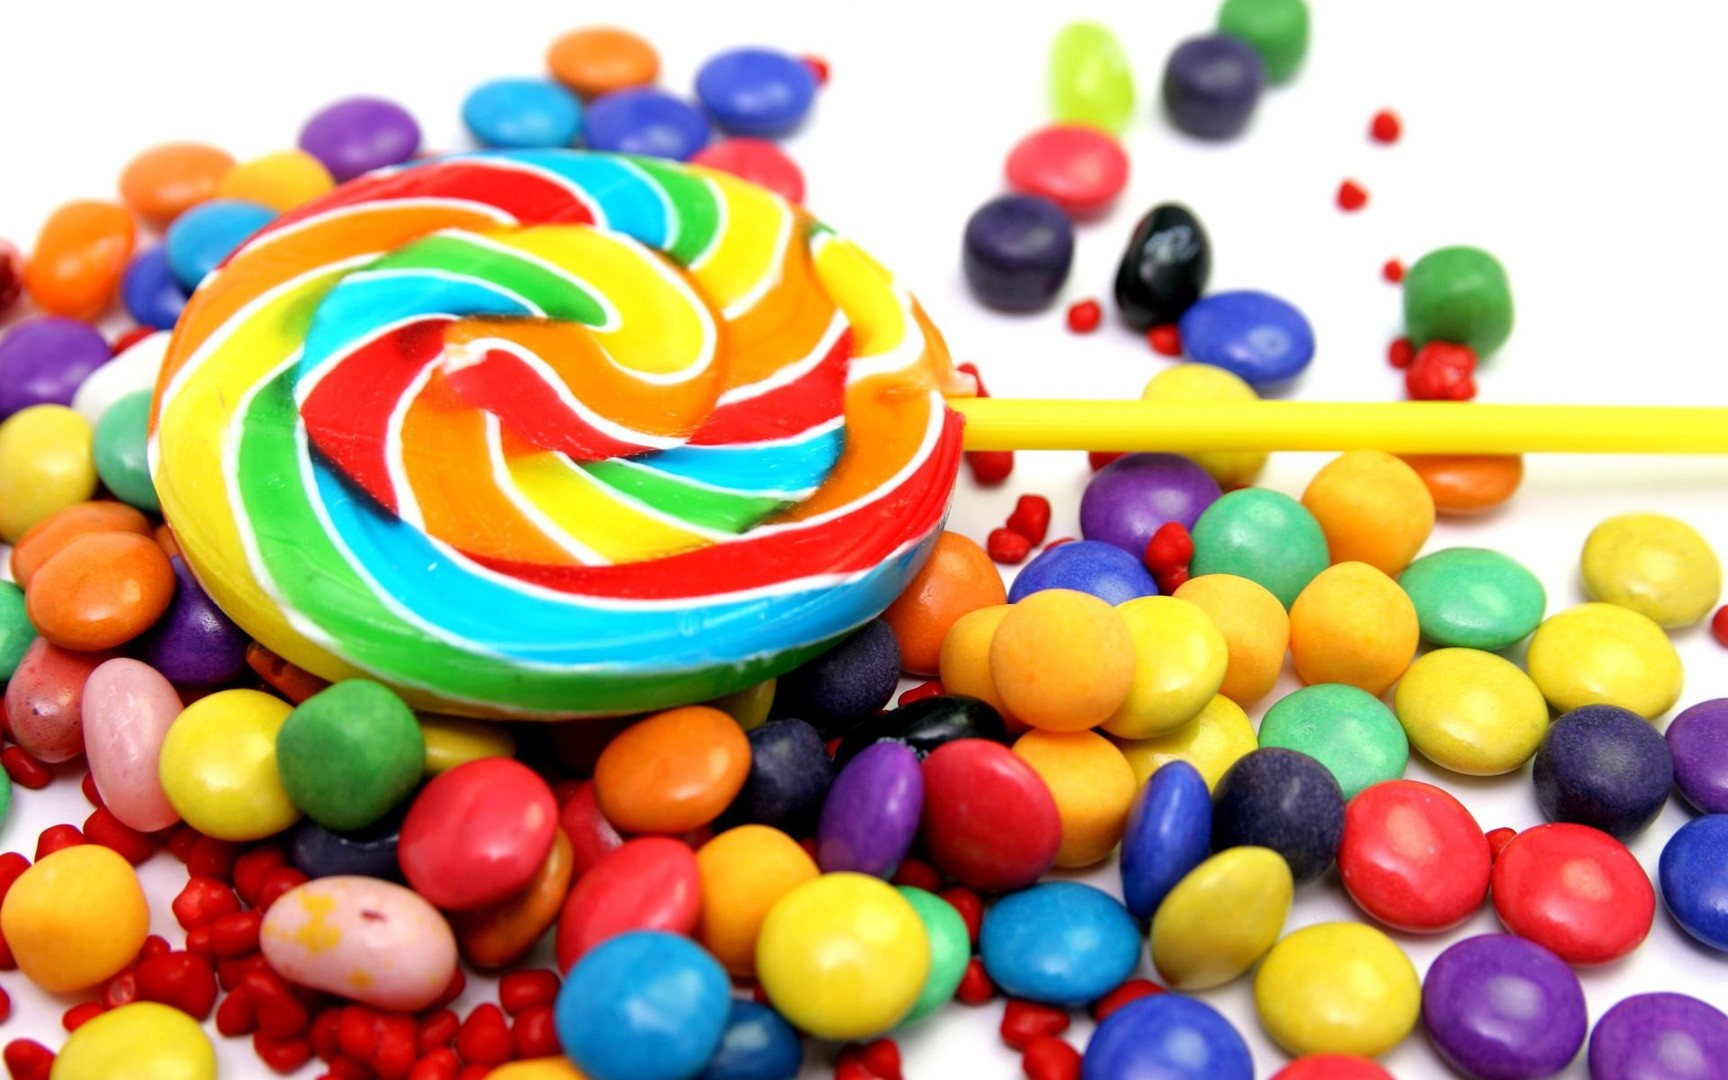 lollipop-and-candy-1920x1080-wallpaper-fthaxz.jpg